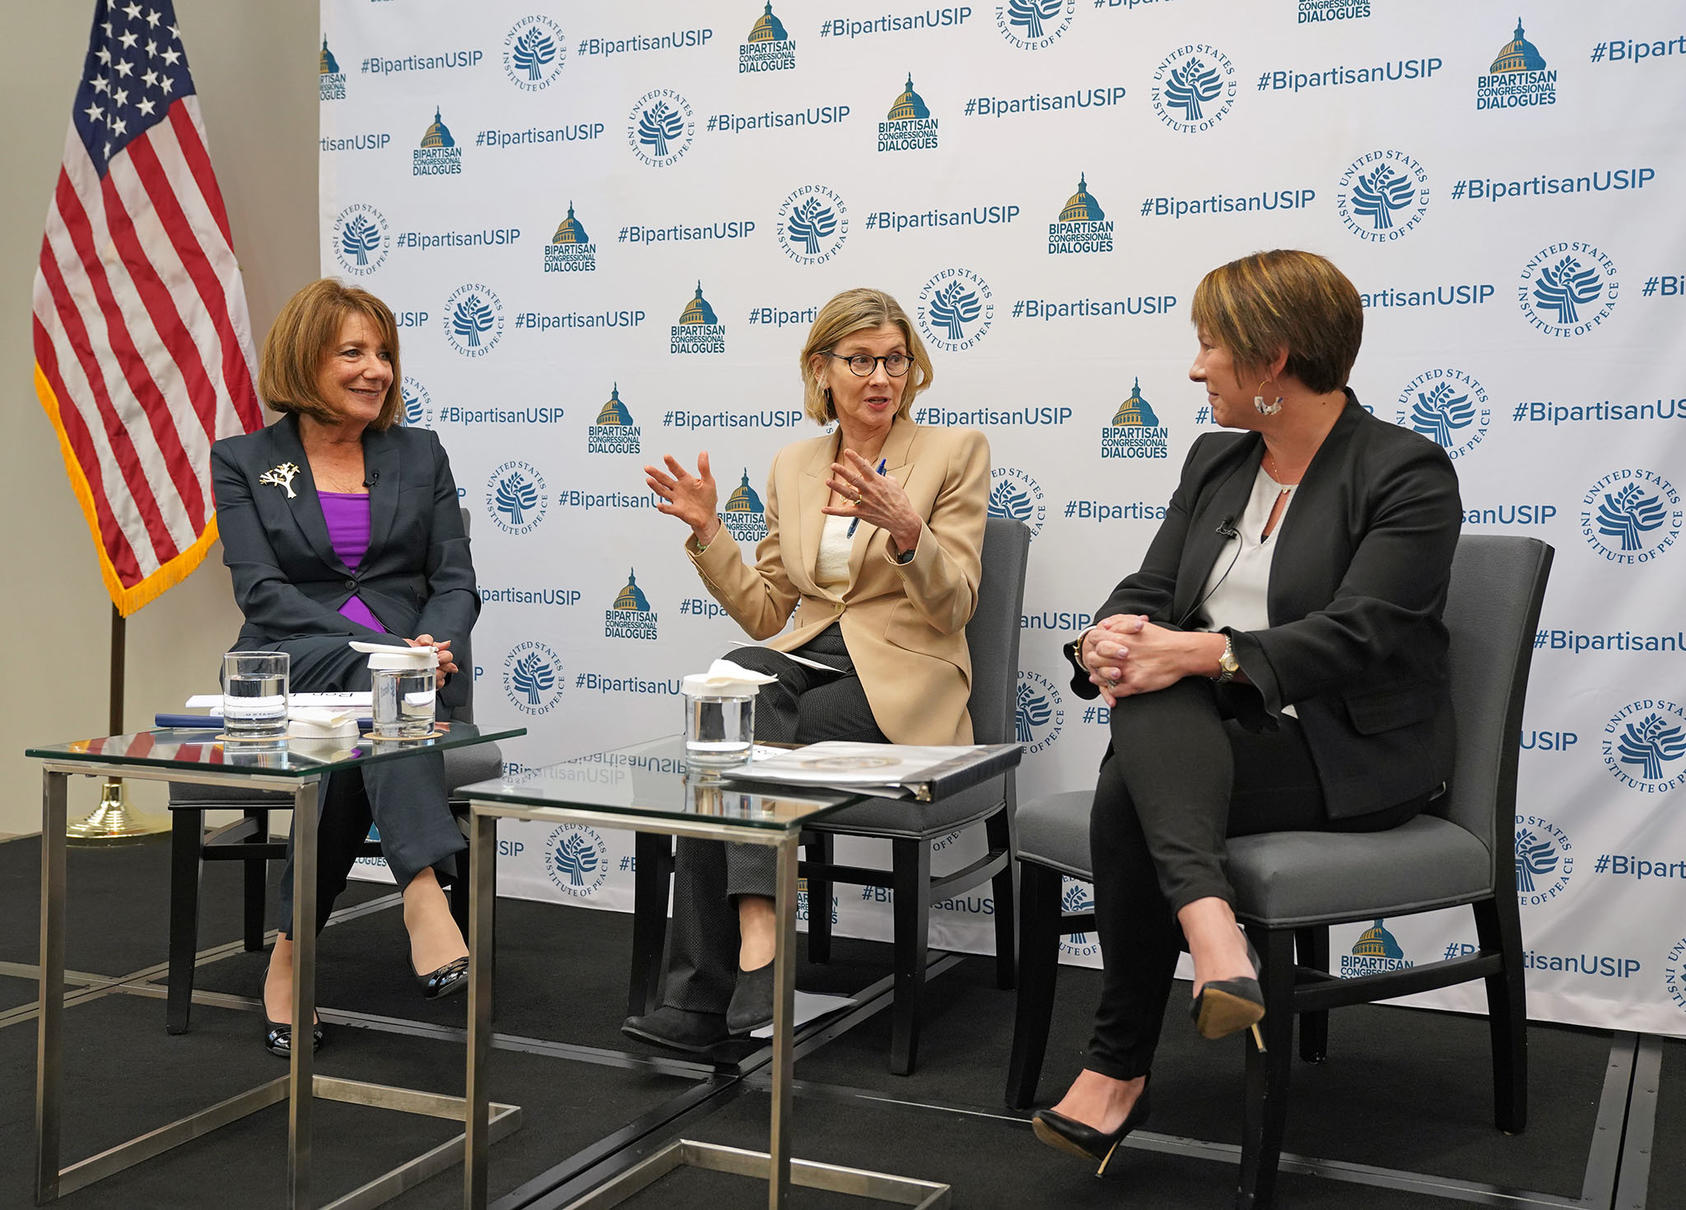 From left to right: Rep. Susan Davis (D-CA), USIP President and CEO Nancy Lindborg and Rep. Martha Roby (R-AL) discuss Afghanistan at the U.S. Institute of Peace on October 18, 2019.